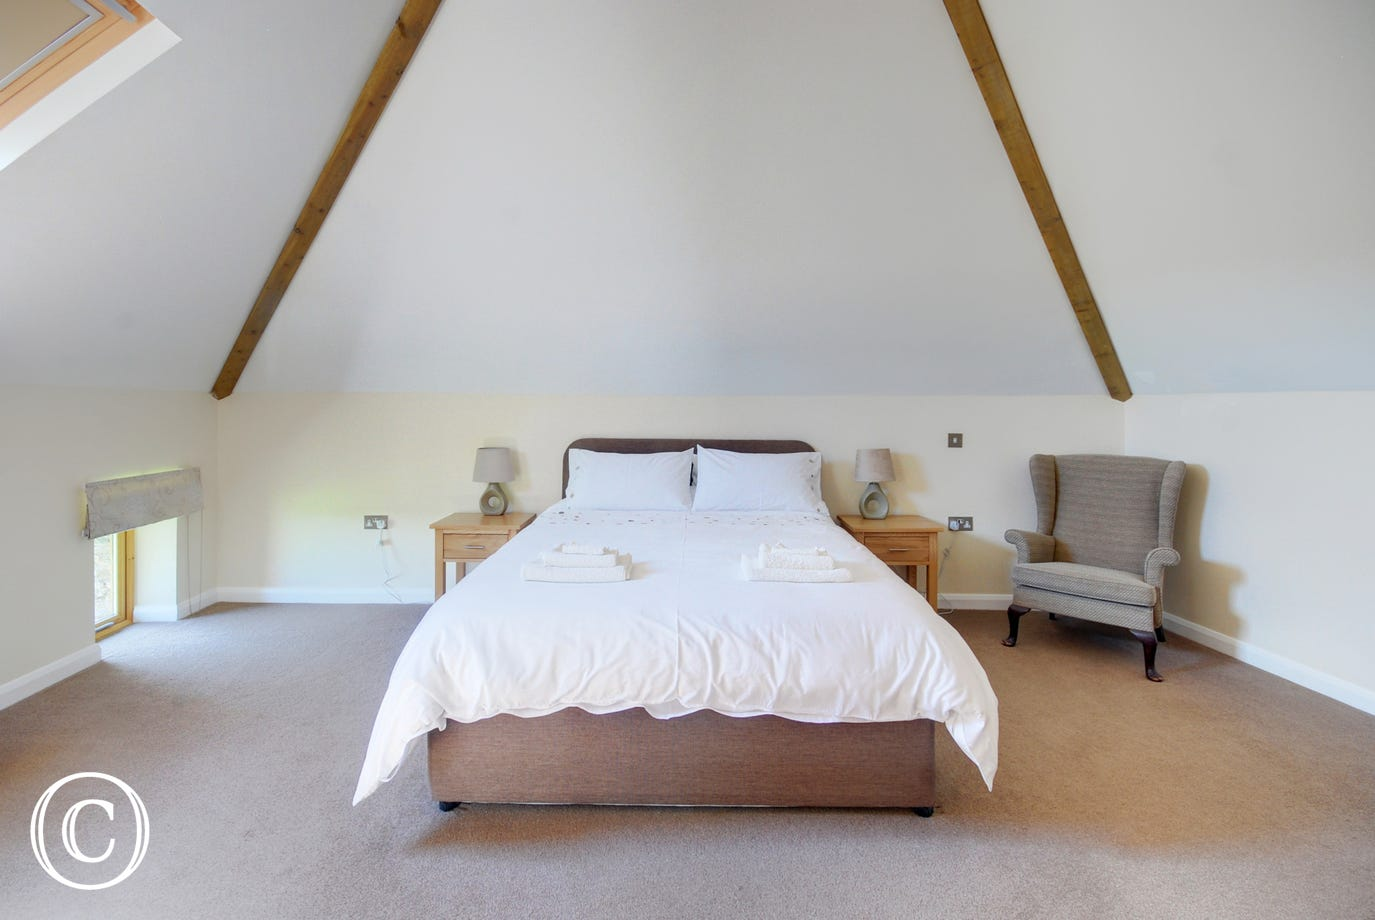 The spacious master bedroom with kingsize bed and ensuite bathroom